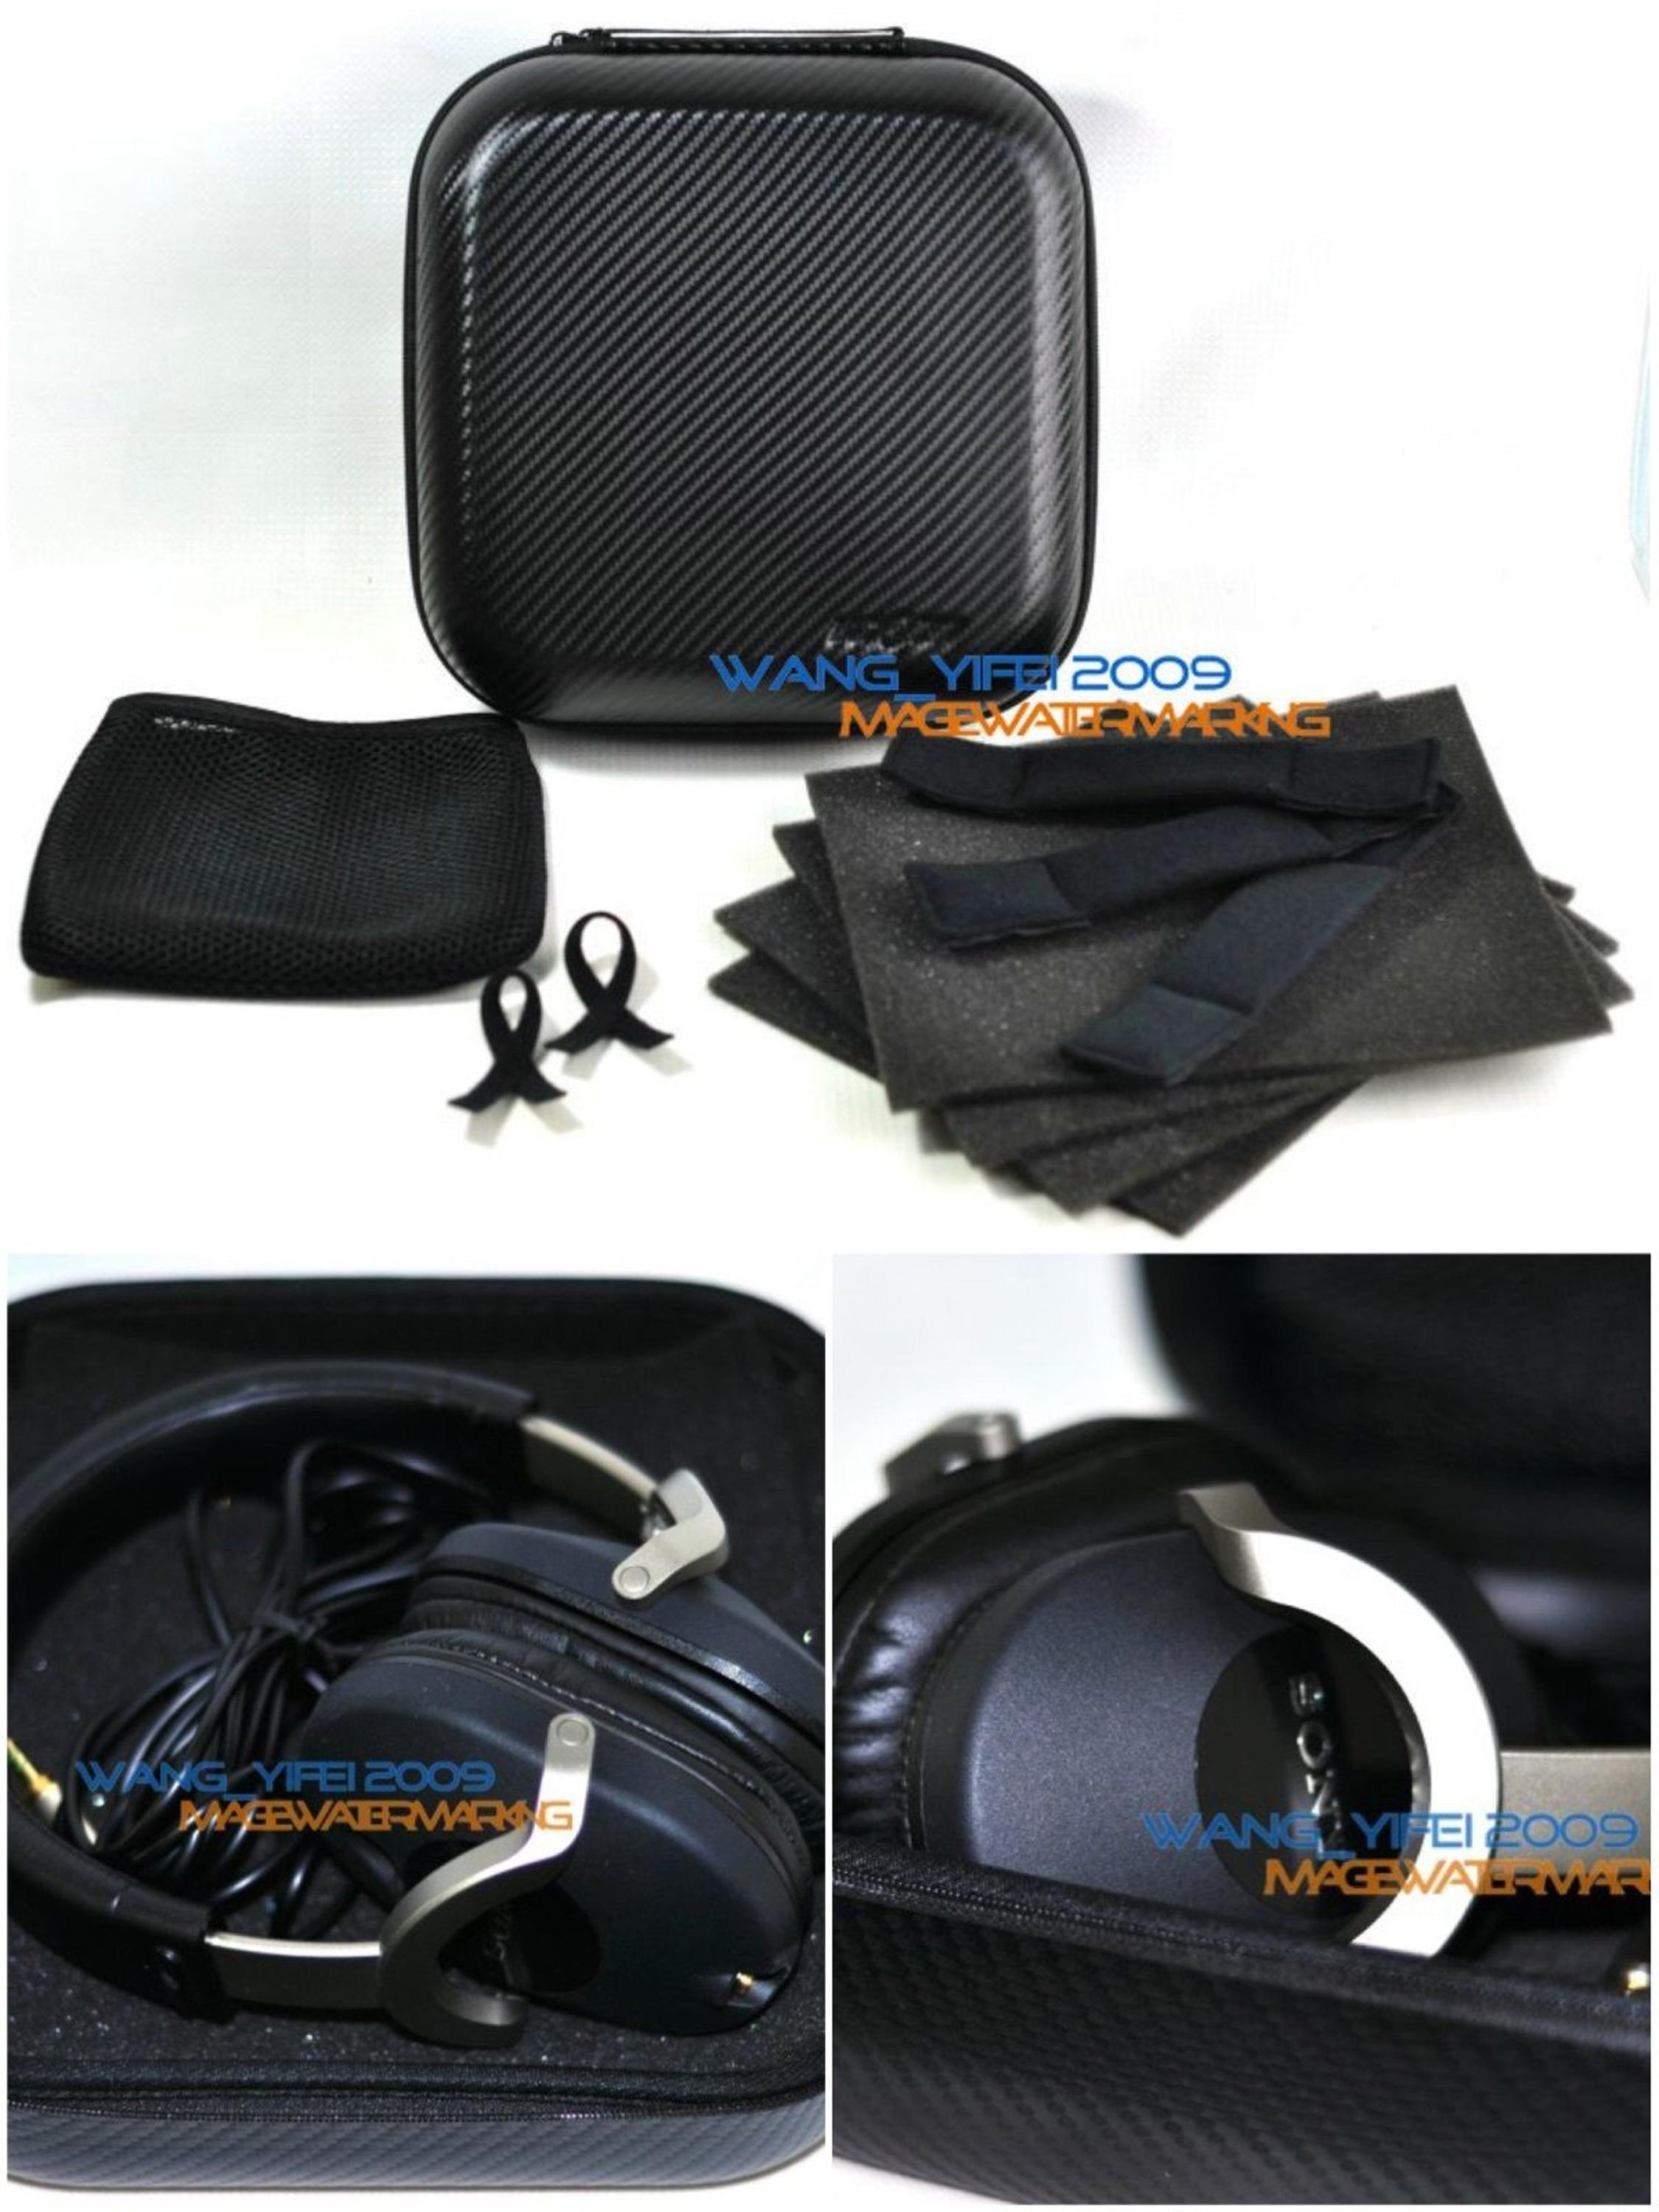 New Hard Storage Case Carrying Bag Protect Box For SONY <font><b>MDR</b></font> <font><b>Z1000</b></font> <font><b>MDR</b></font> 7520 ZX 700 Headphone image